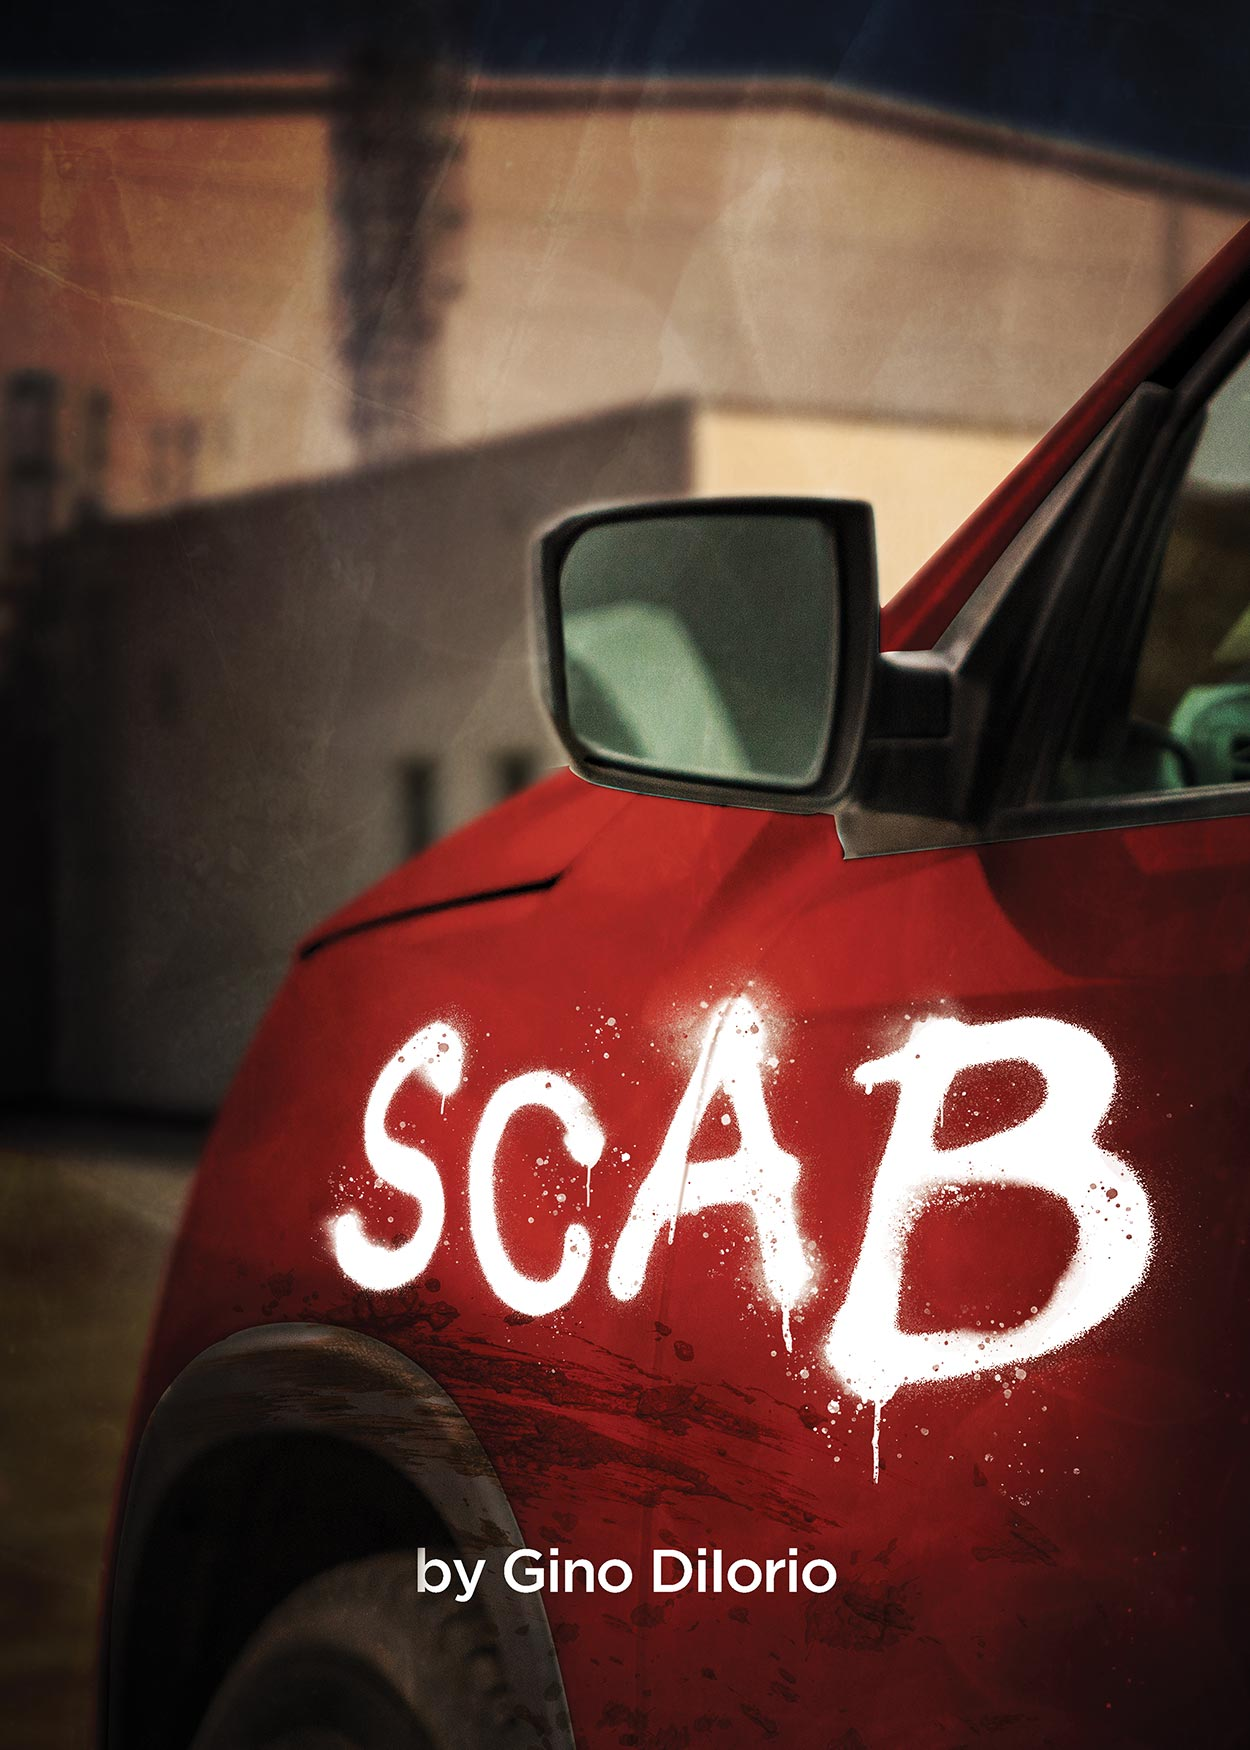 Key Art from Scab by Gino Diiorio (2020). In the forefront of the image is a red car with the word Scab painted on it with white paint. The background is an old brick factory.